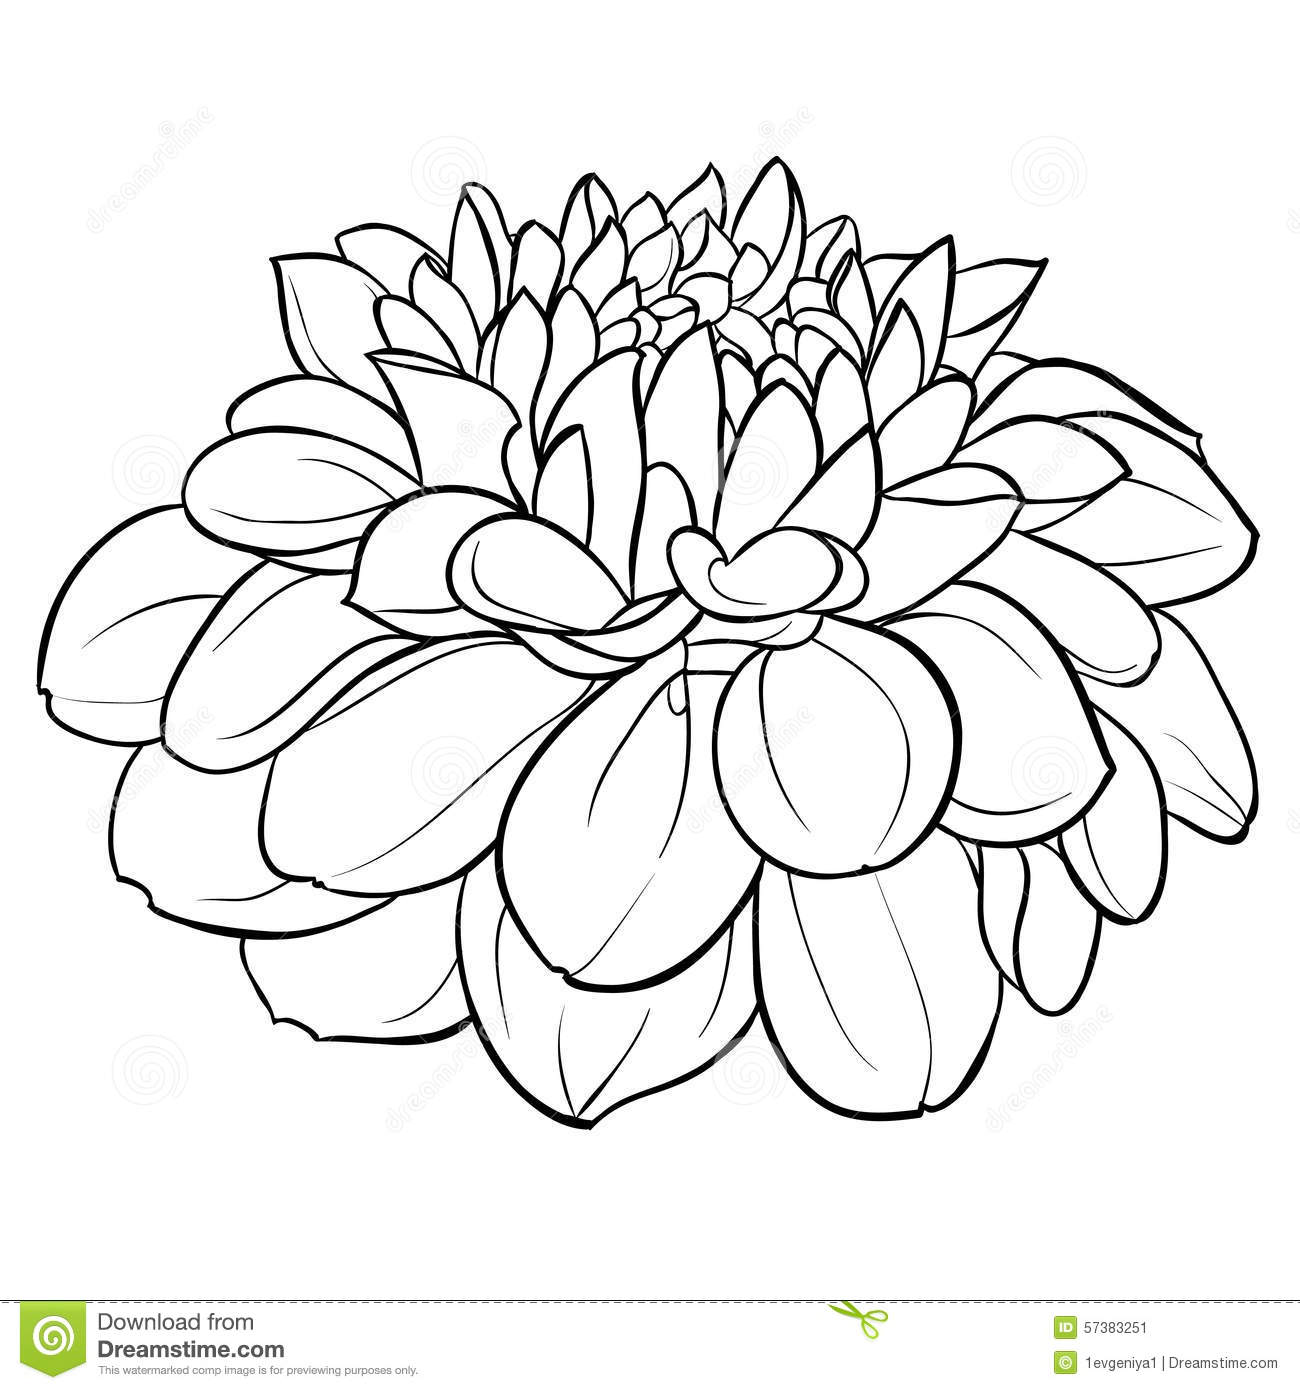 Contour Line Drawing Of A Flower : Beautiful monochrome black and white dahlia flower